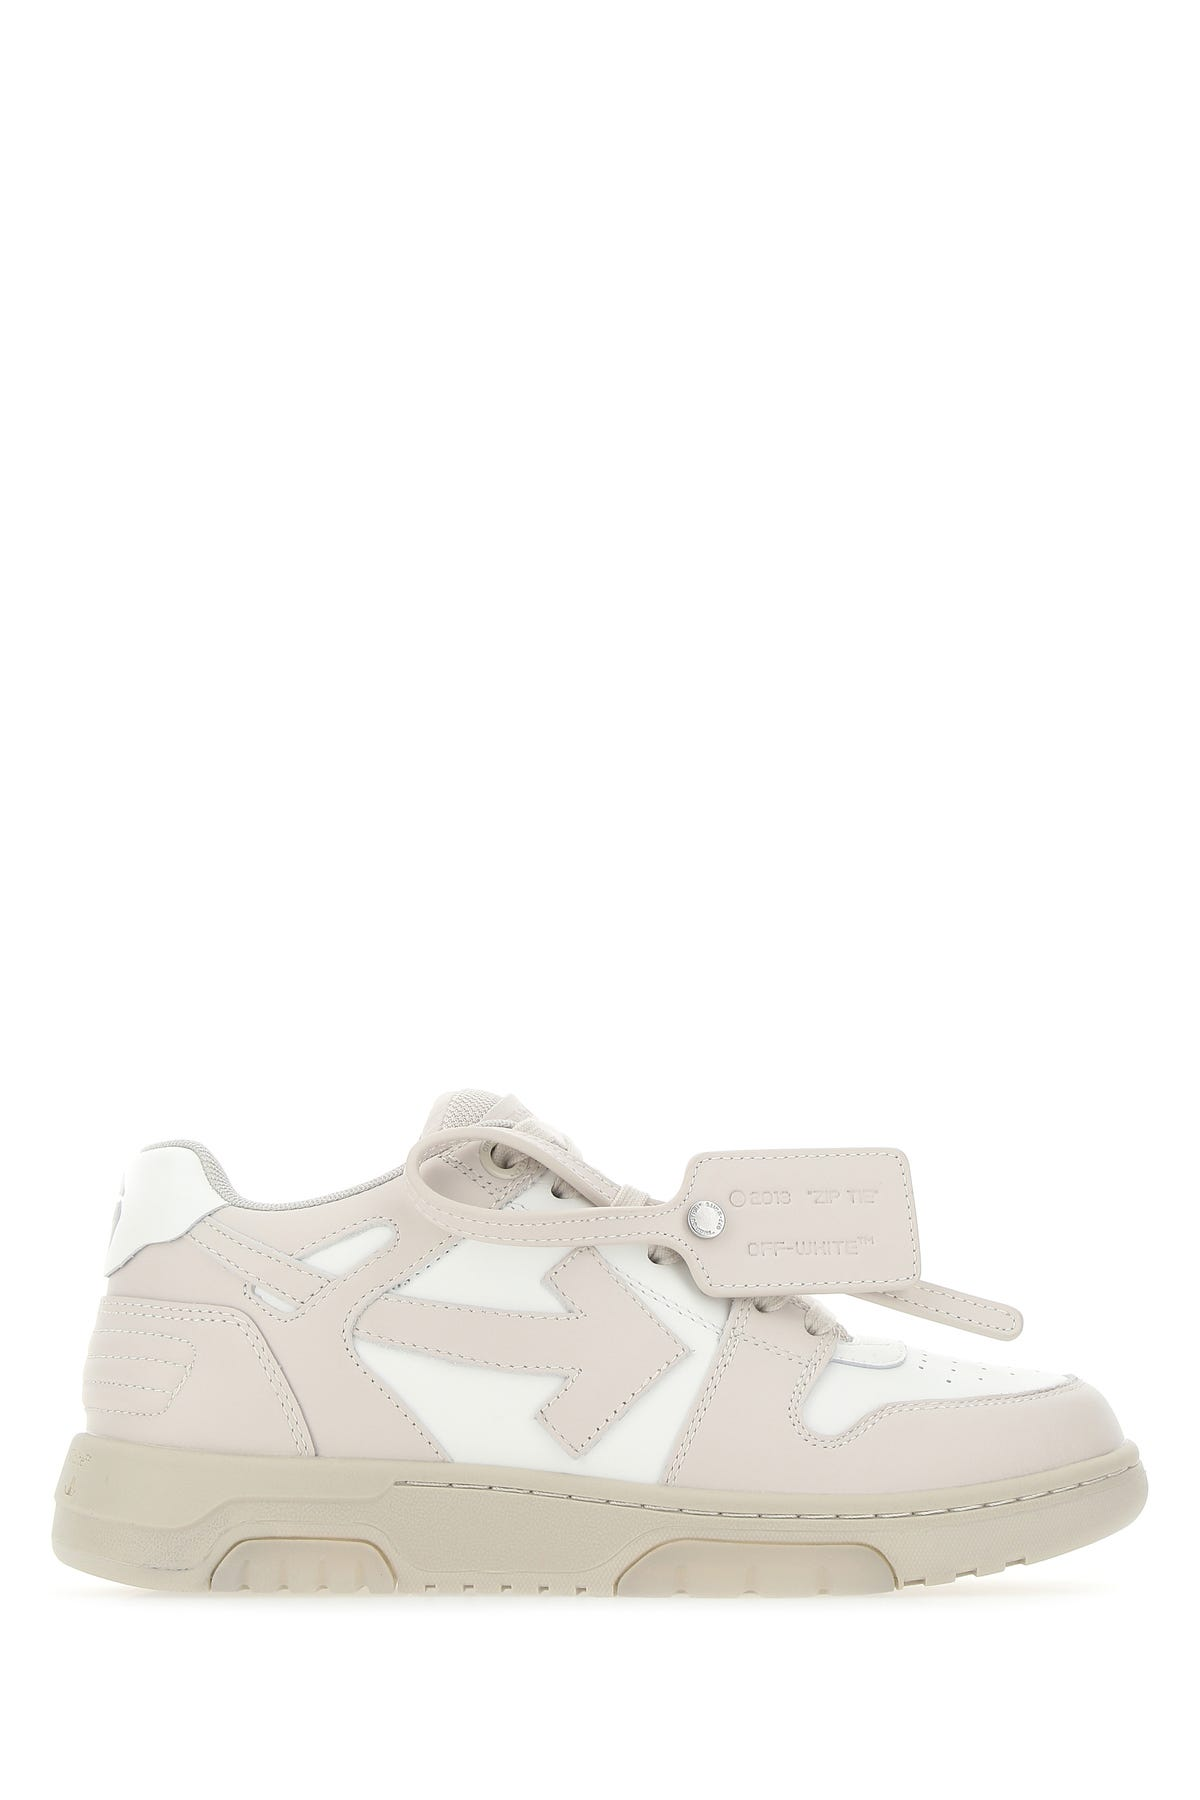 Off-White SNEAKERS-39